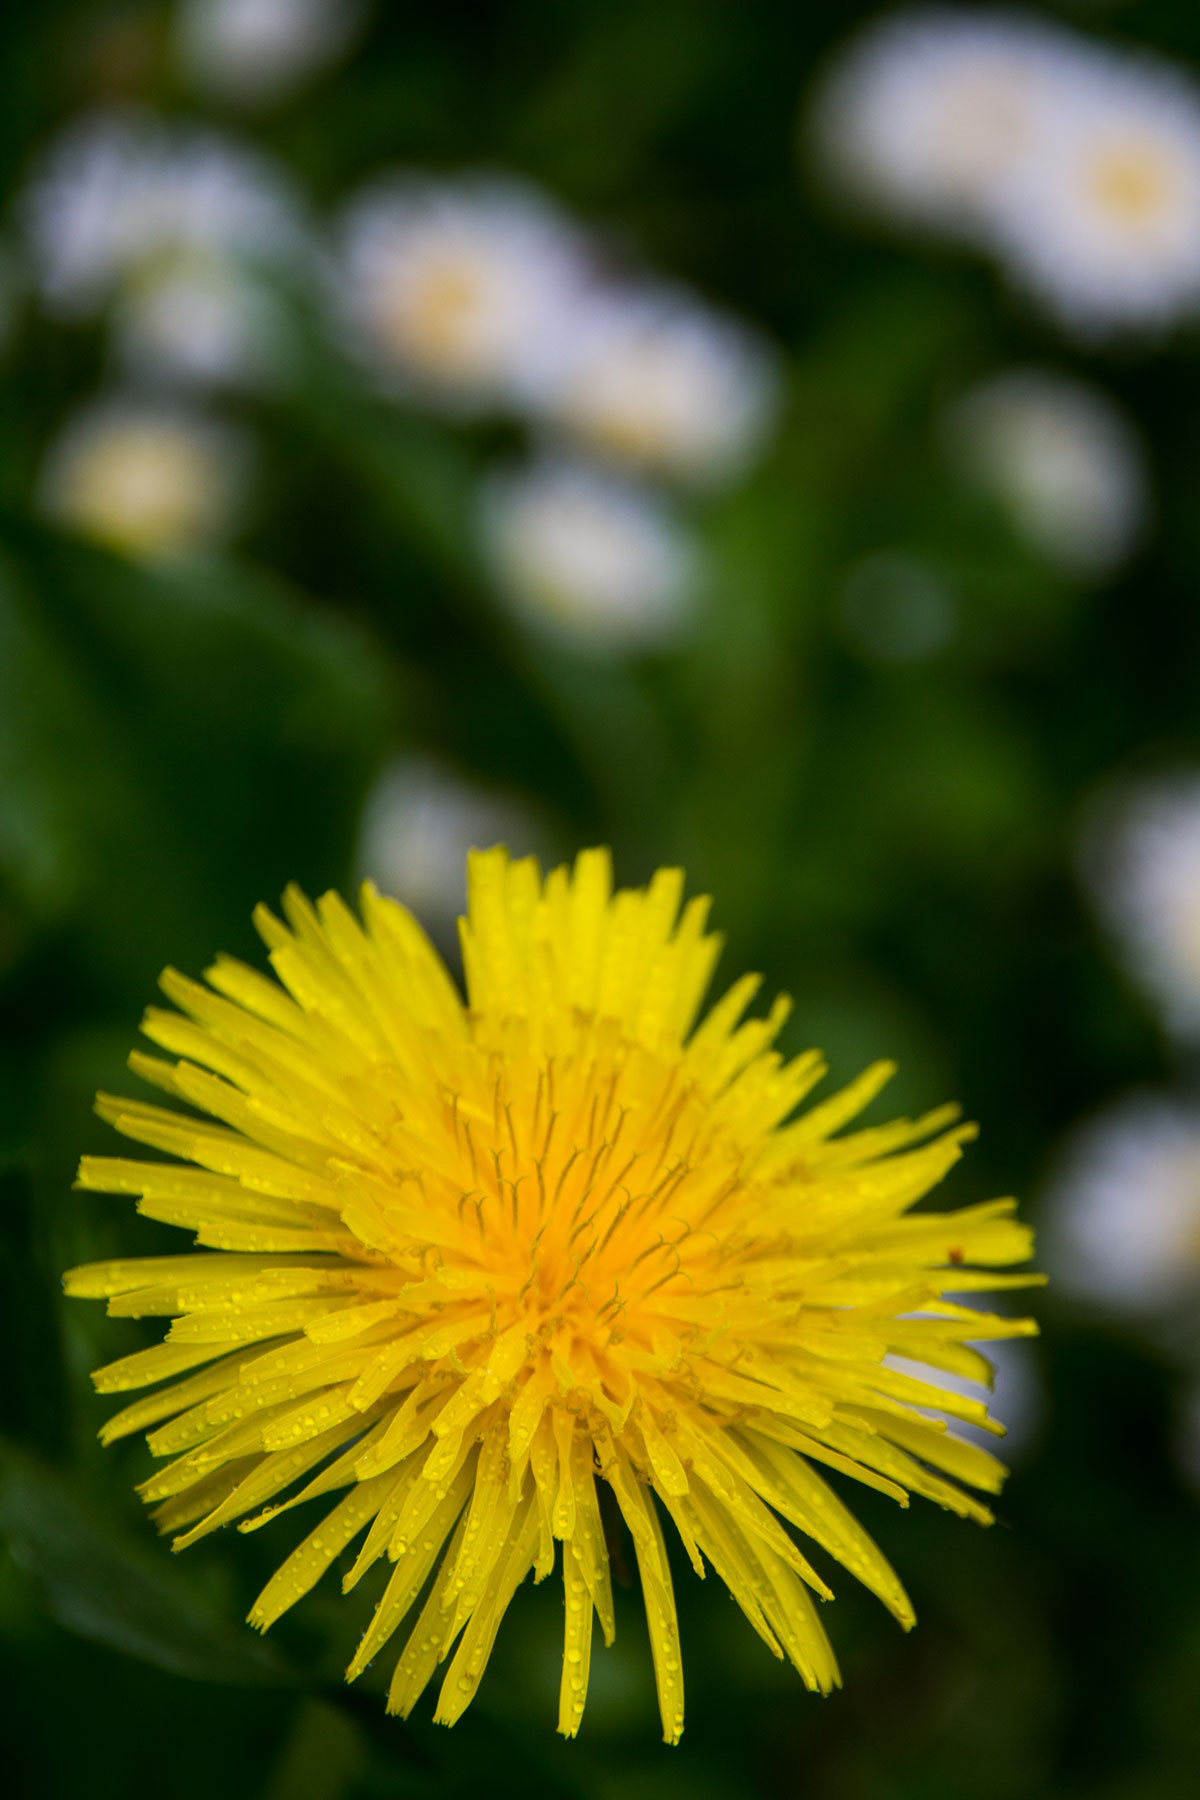 Dandelion with the morning dew